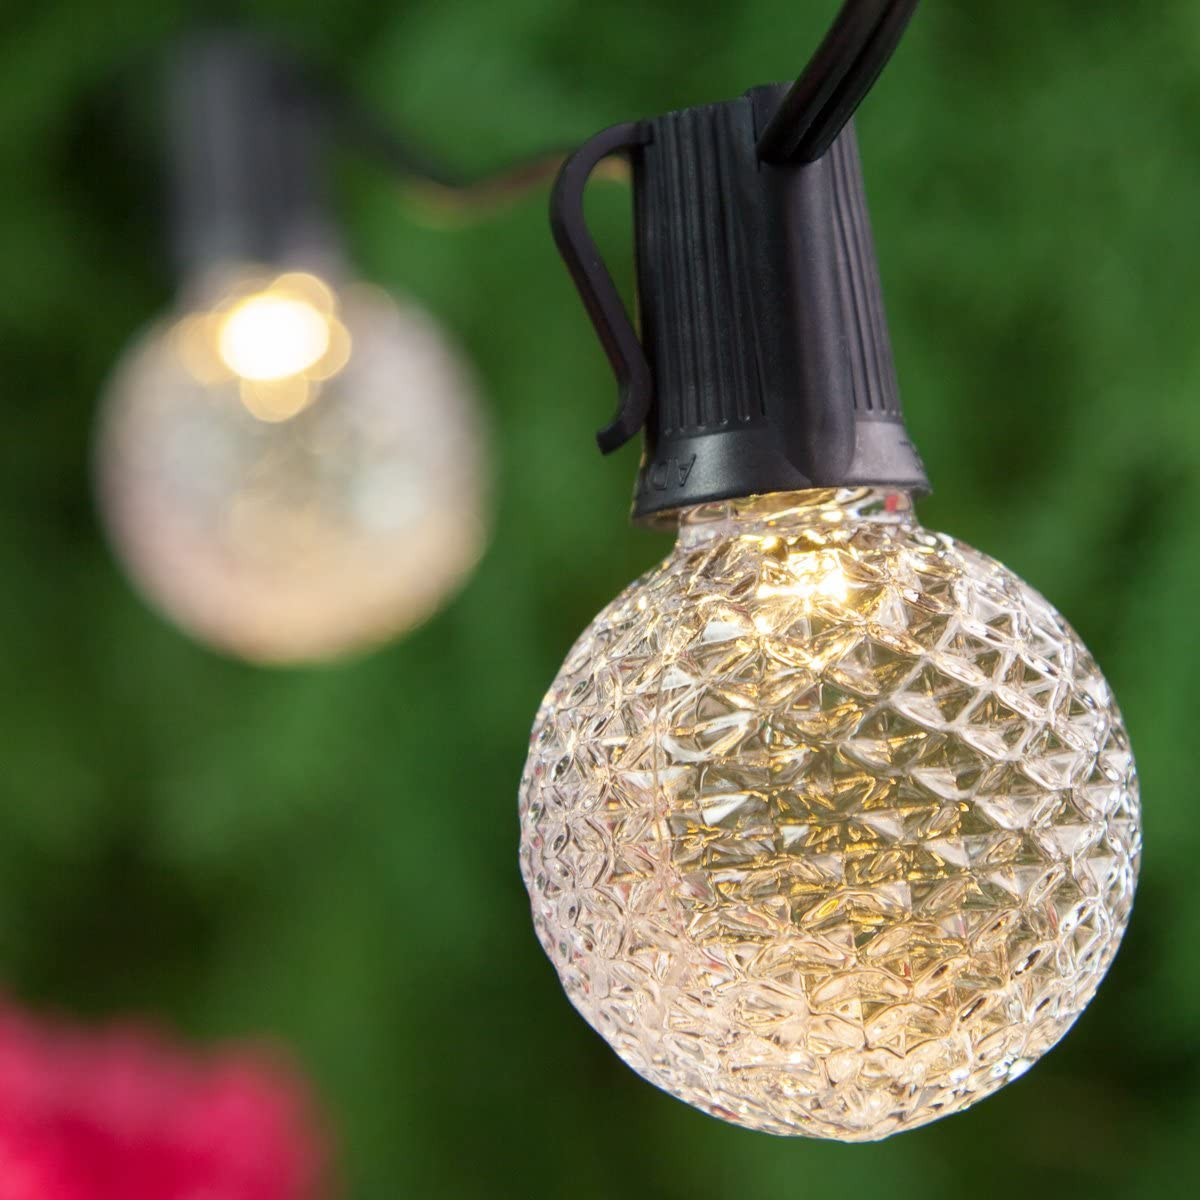 OptiCore Heavy Duty Patio Lights LED Lights Patio Lights String LED, Shatter Resistant Bulbs, Commercial LED Globe Lights 50 Lights, 50 , E17, Warm White G50 Bulbs on Black Wire